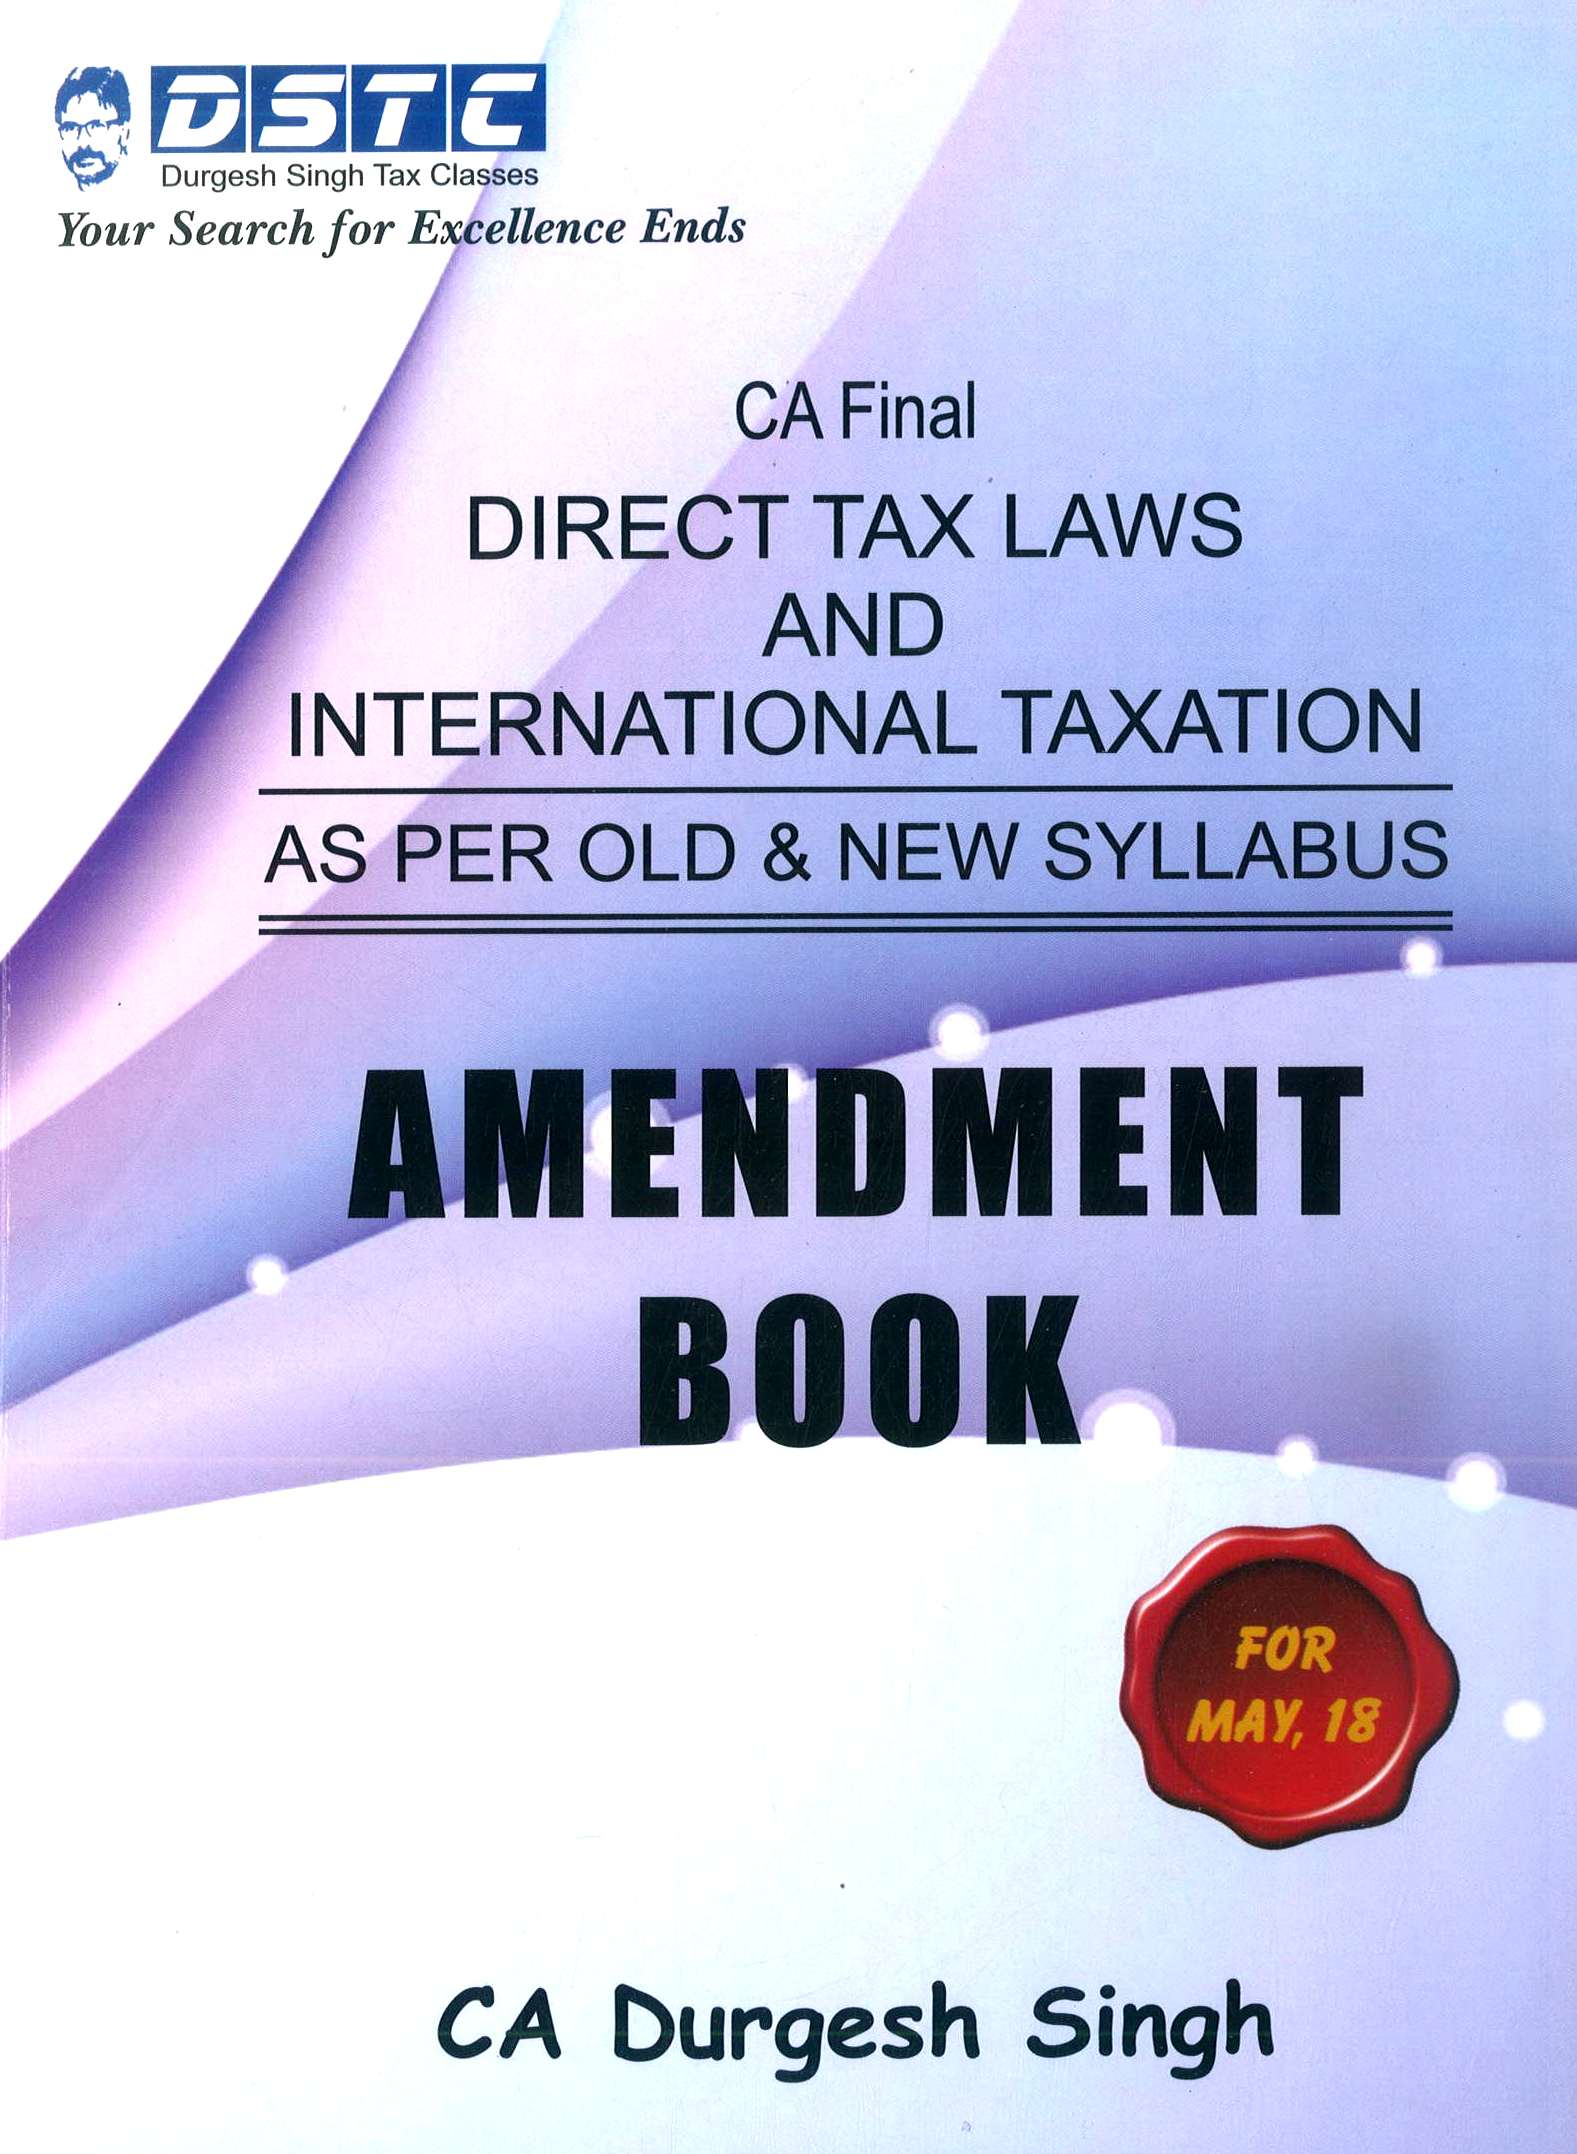 CA Final Direct Tax Laws and International taxation (Amendment Book) as per Old & New Syllabus By Durgesh Singh Applicablefor May June 2020 Exam